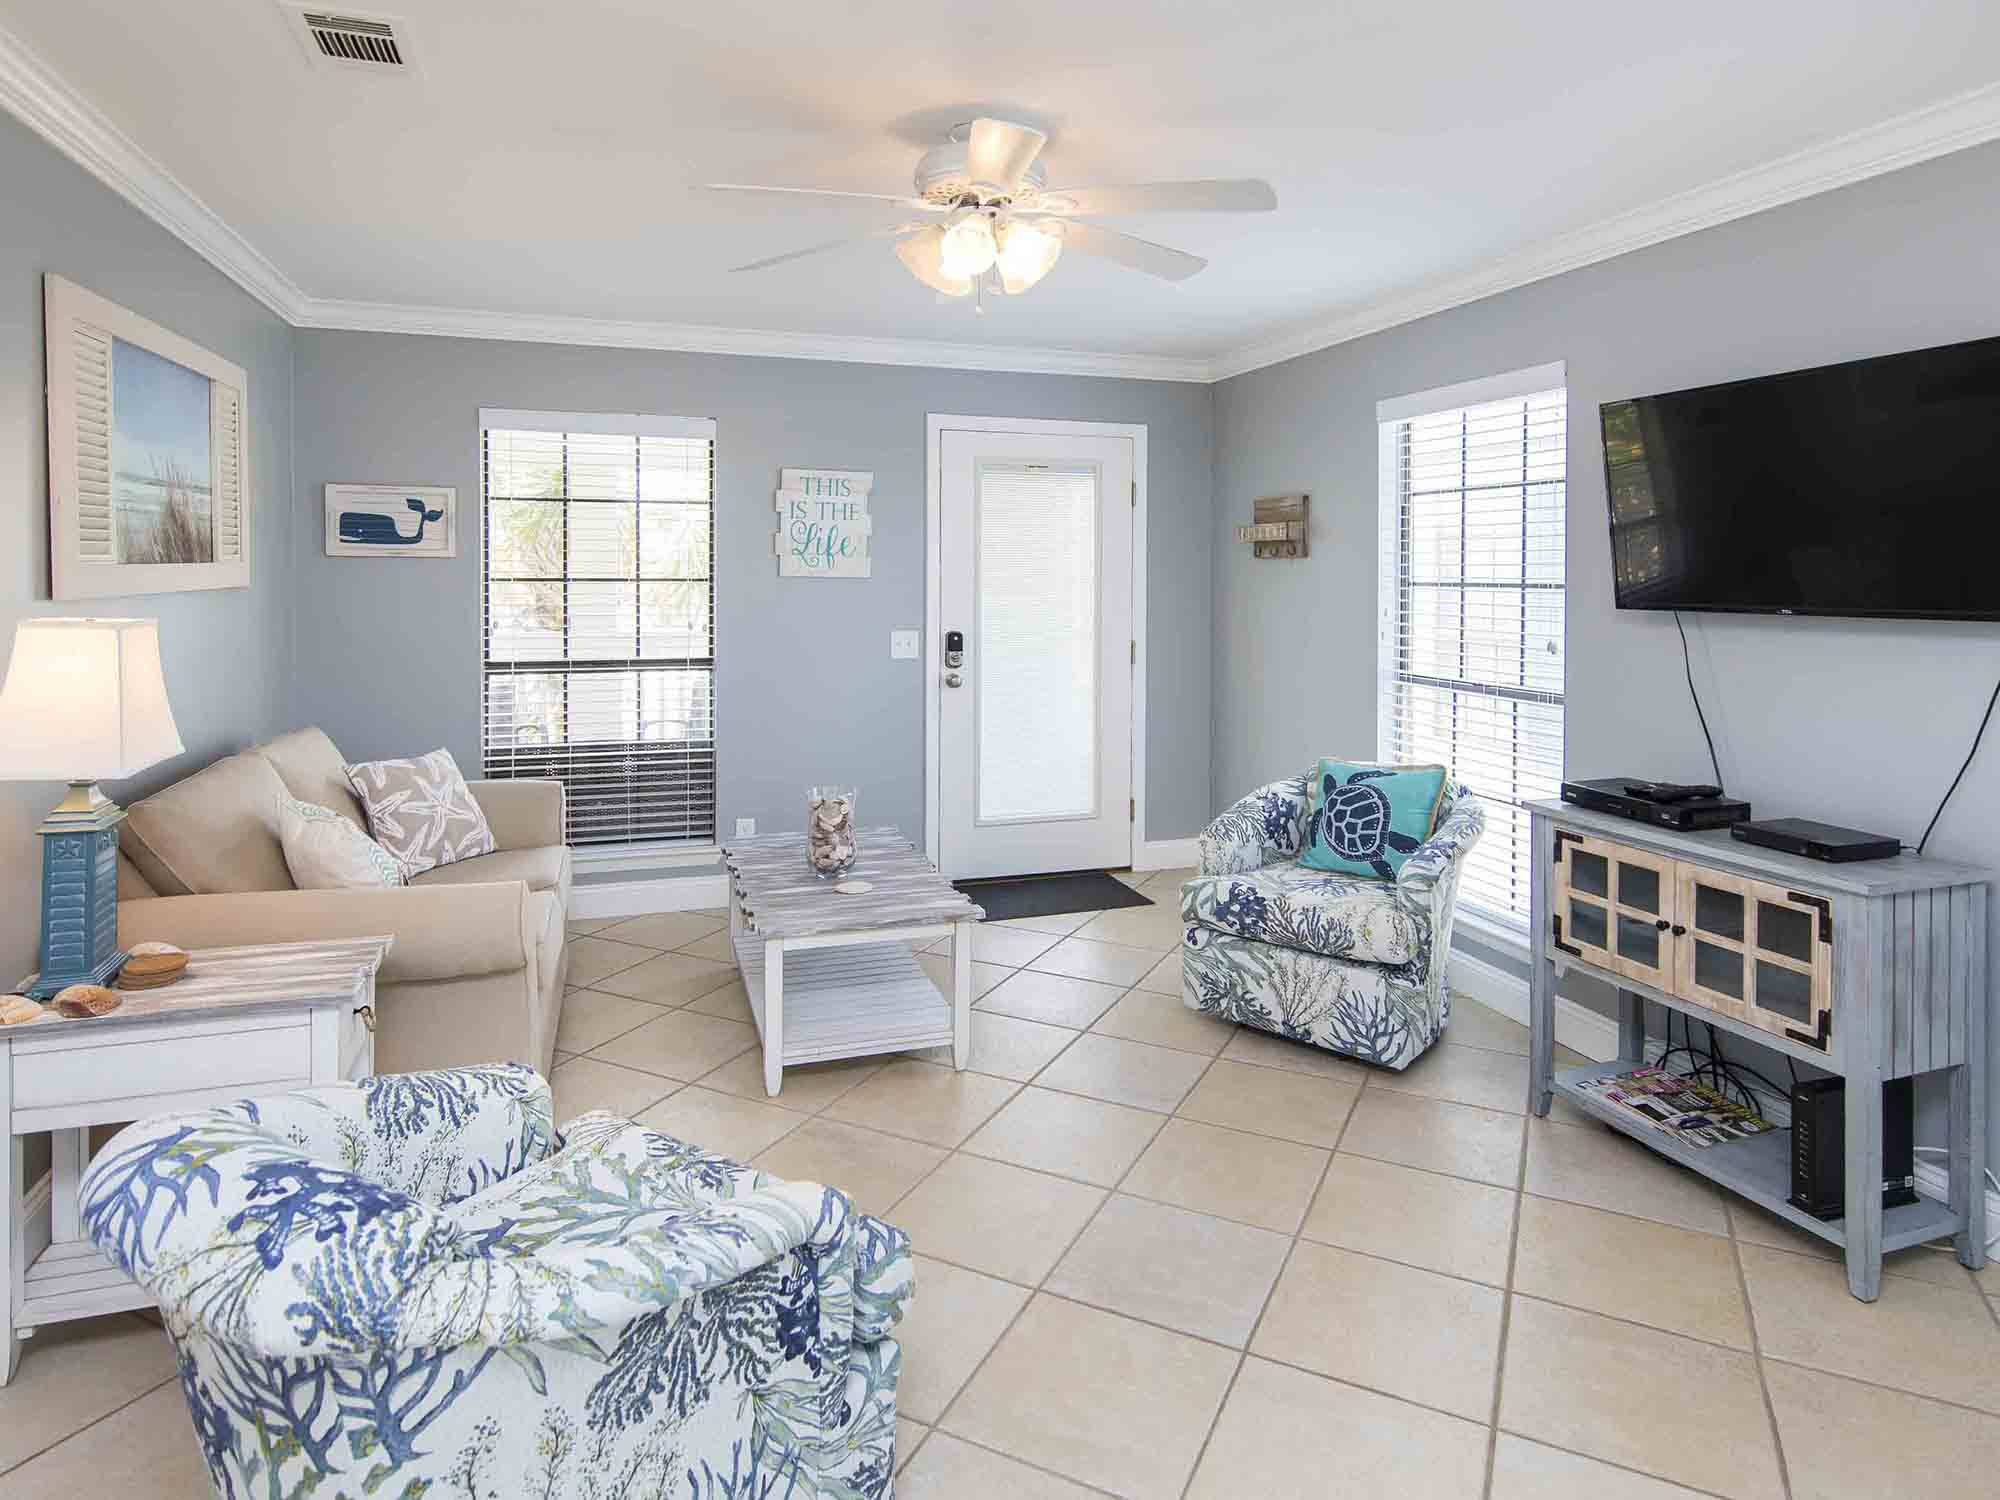 Panama City Beach vacation rental close to the beach with 2 bedrooms